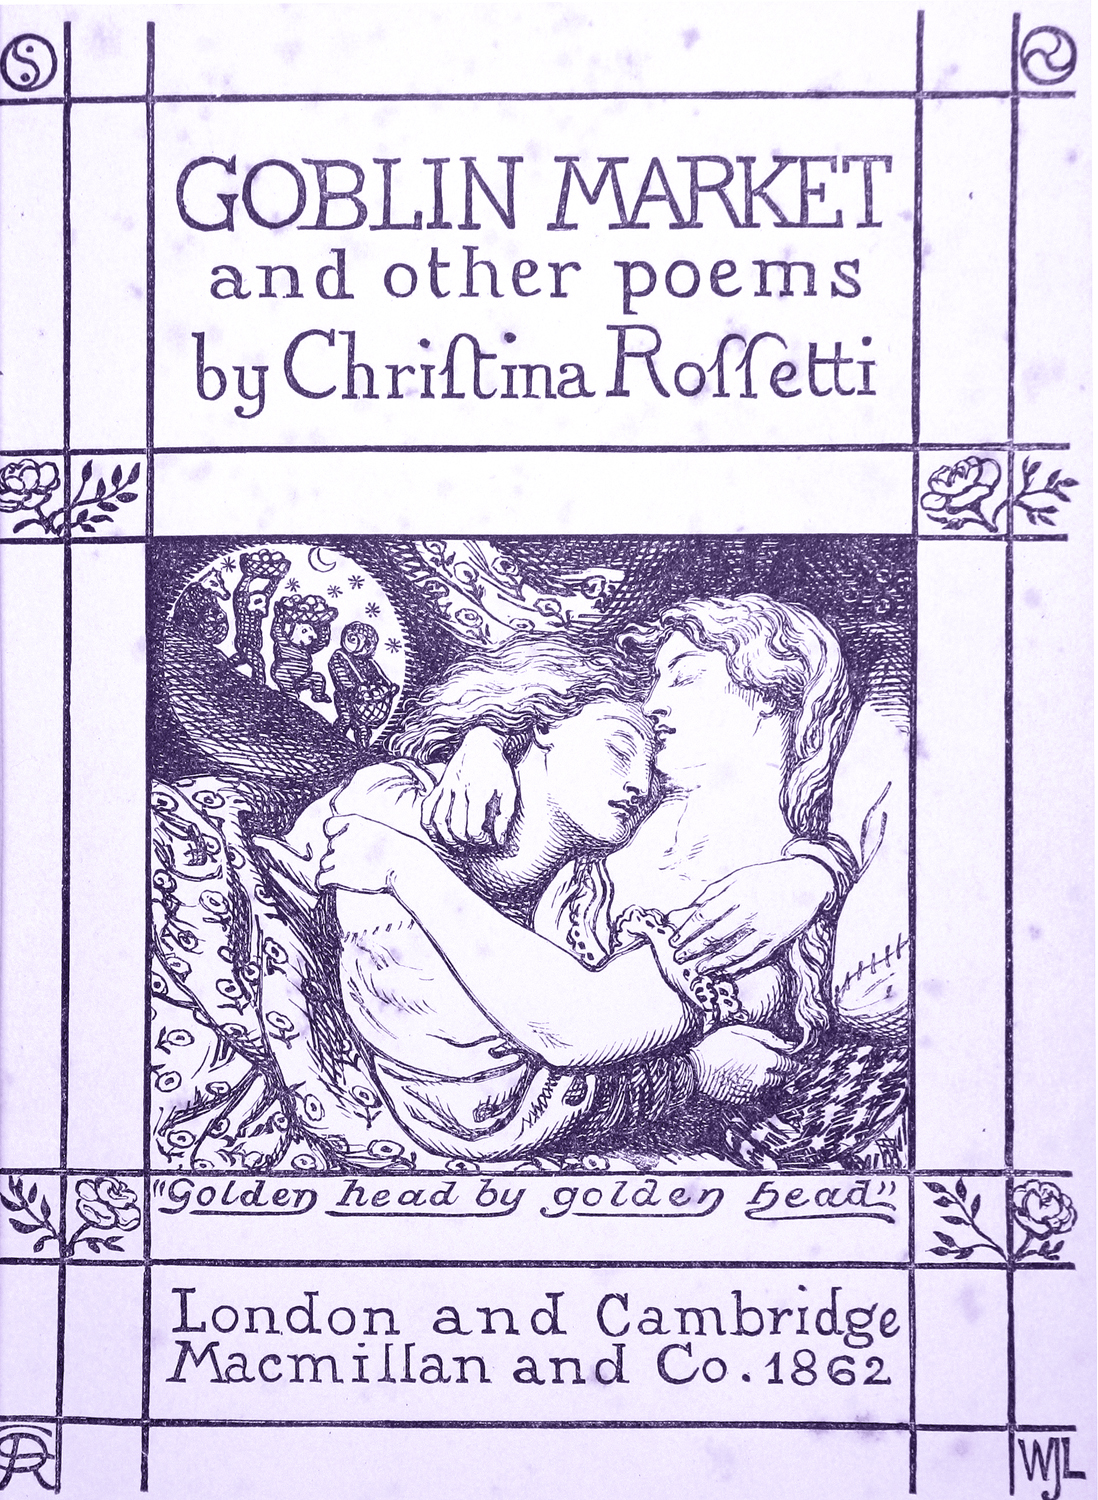 Rossetti, Dante Gabriel. Frontispiece to Christina Rossetti's  Goblin Market and Other Poems . 1862. Public domain via Wikimedia Commons.